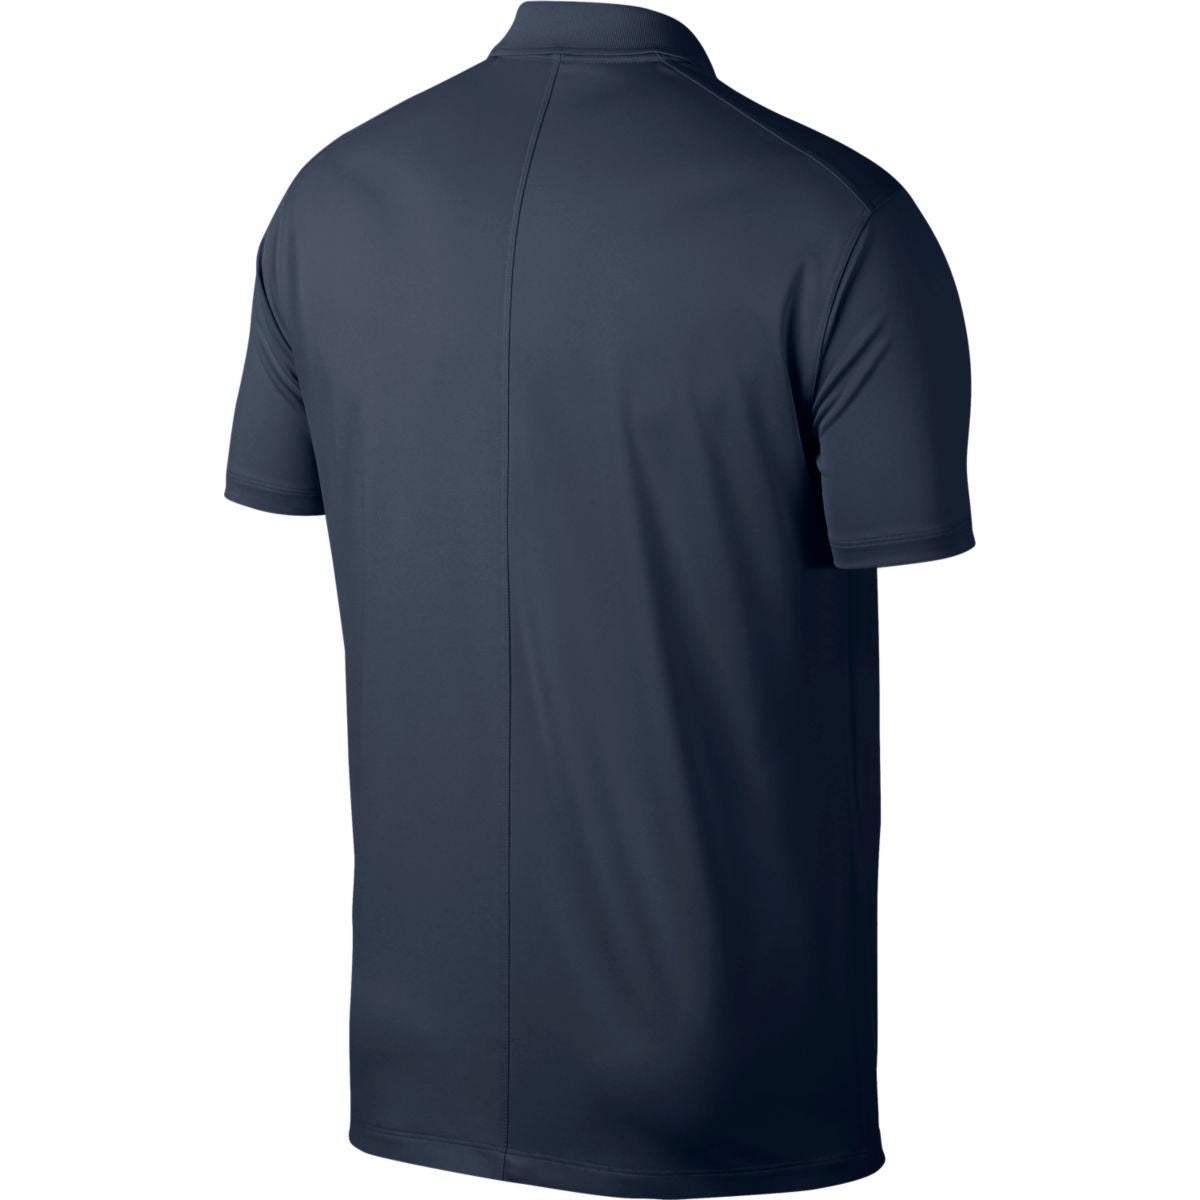 Men's Nike Dry Golf Victory Polo Shirt.    891857-471